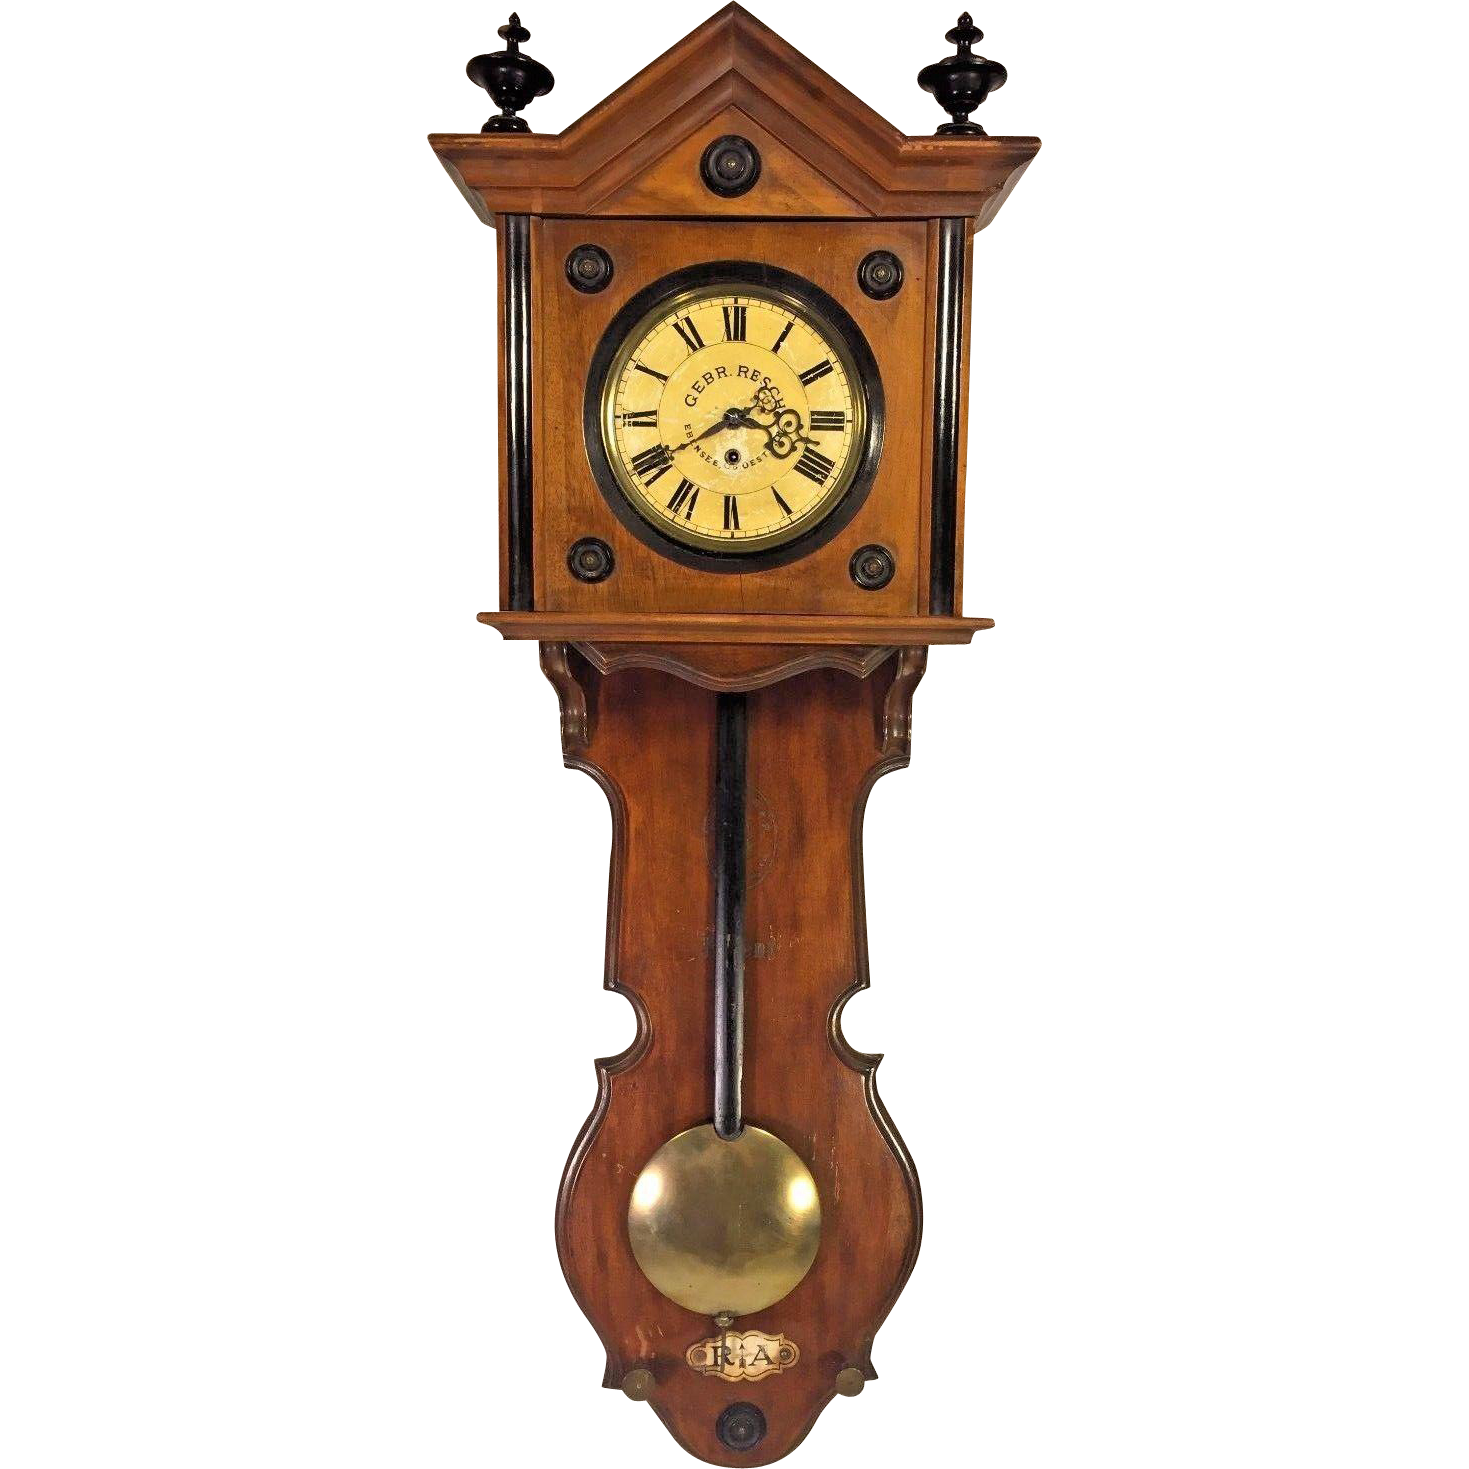 Antique gebrueder resch free swinger wall clock time only great antique gebrueder resch free swinger wall clock time only great wood case broken wood pendulum shaft late 1860s to early 1870s runs amipublicfo Choice Image